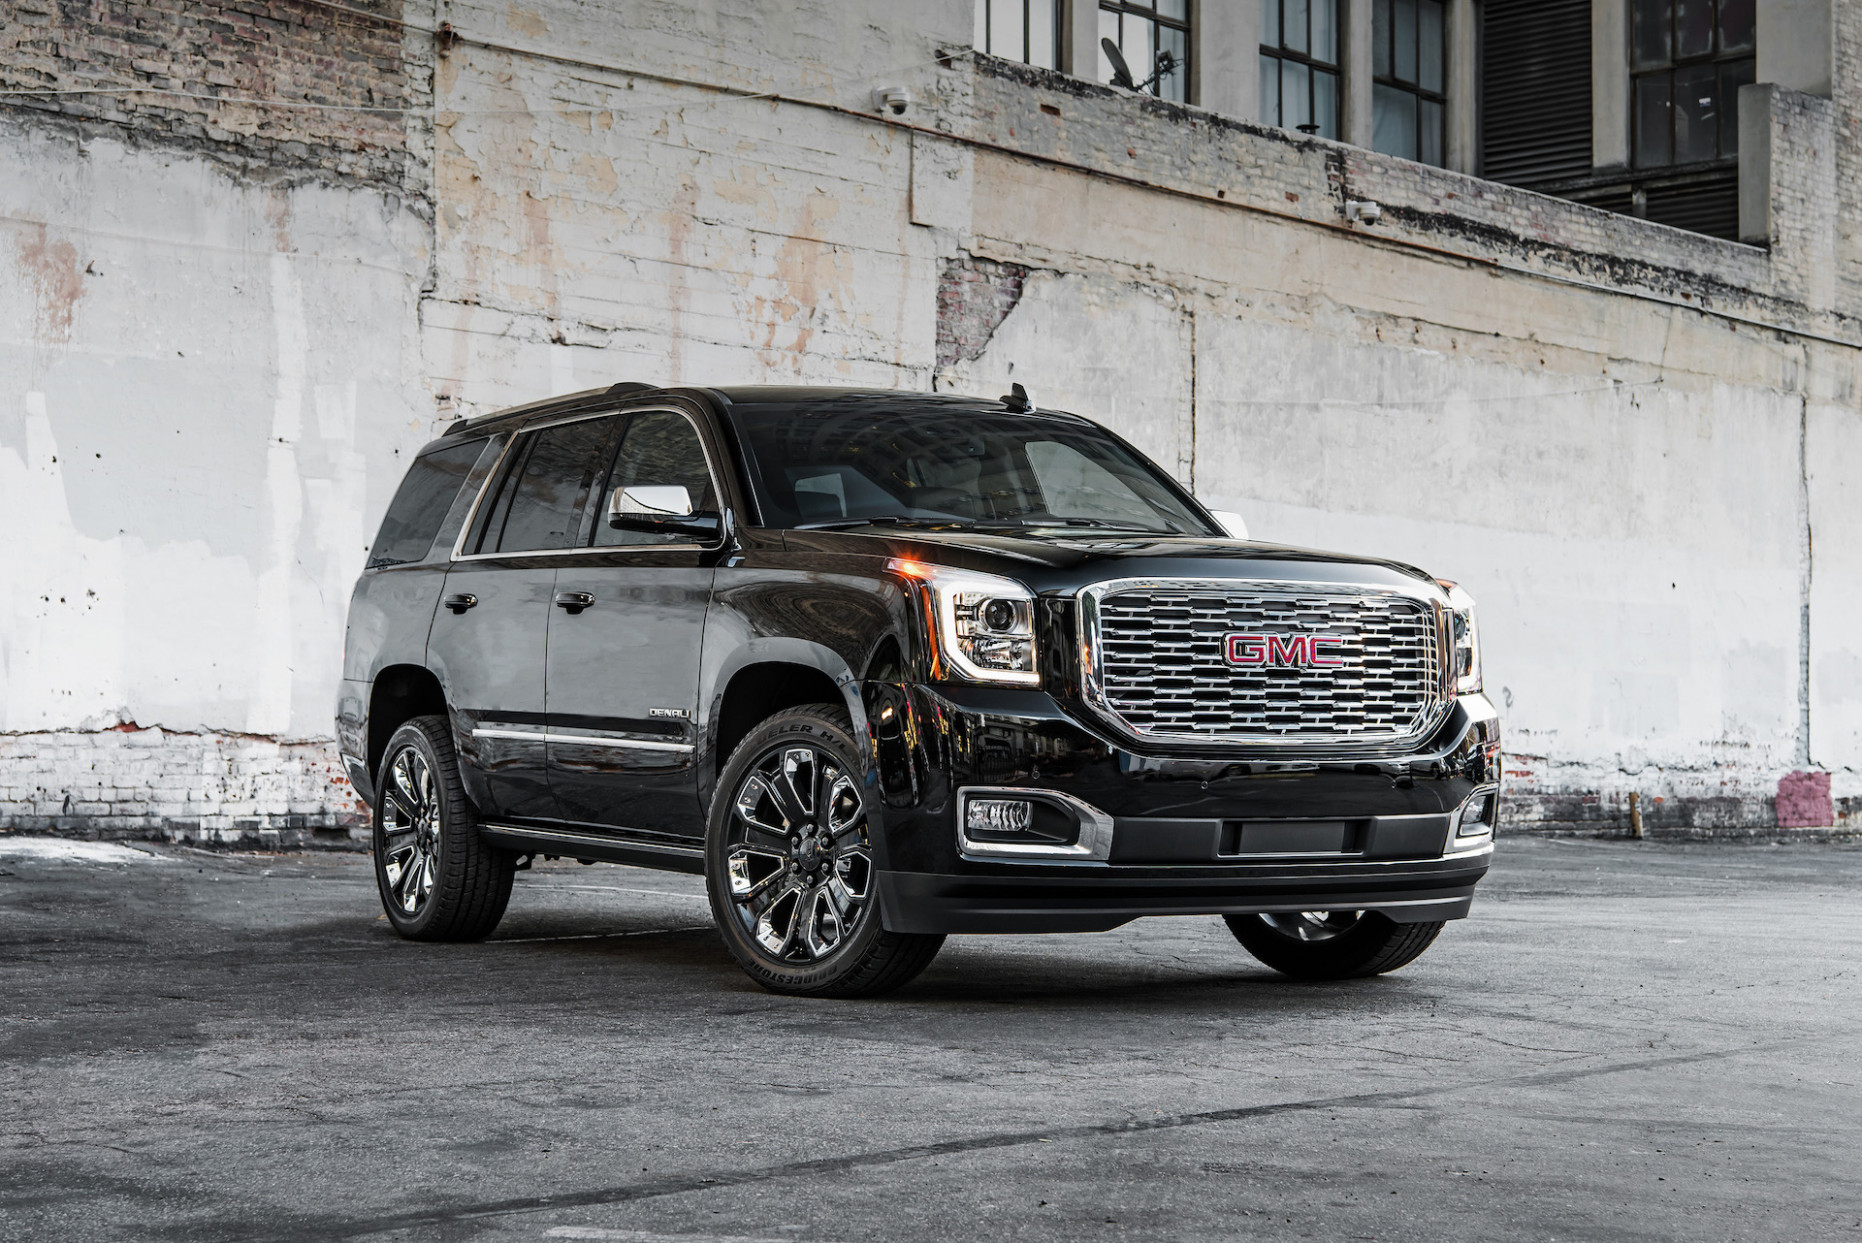 8 GMC Yukon Review, Ratings, Specs, Prices, and Photos - The ...